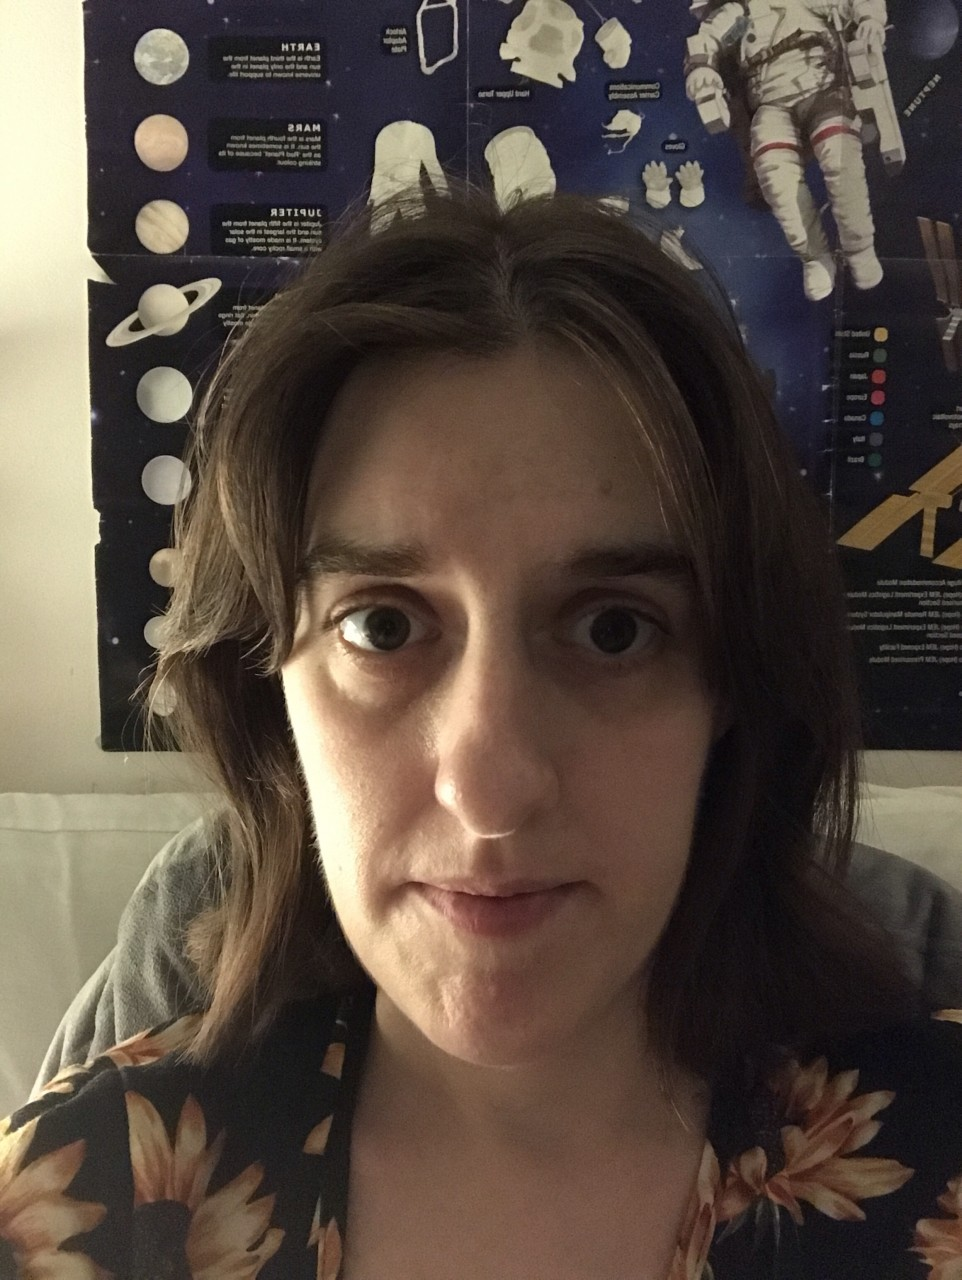 Image of Amanda (a mid-30s woman with dark hair and dark eyes) looking into the camera. She has bags under her eyes and is sitting in front of a Space poster in her son's bedroom.